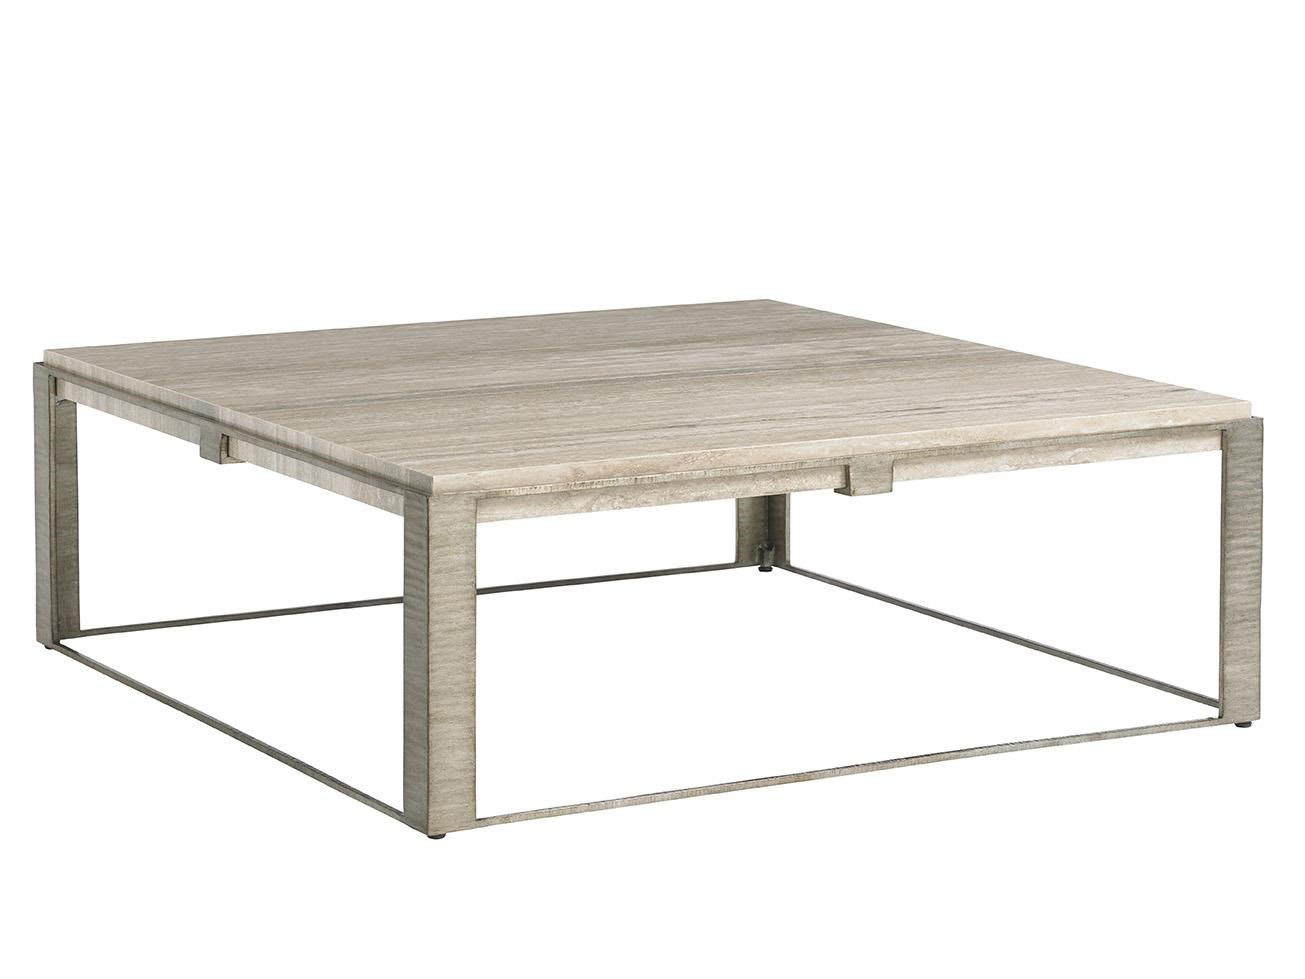 Lexington LAUREL CANYON Stone Canyon Cocktail Table With Silver Travertine  Top   Becker Furniture World   Cocktail/Coffee Tables